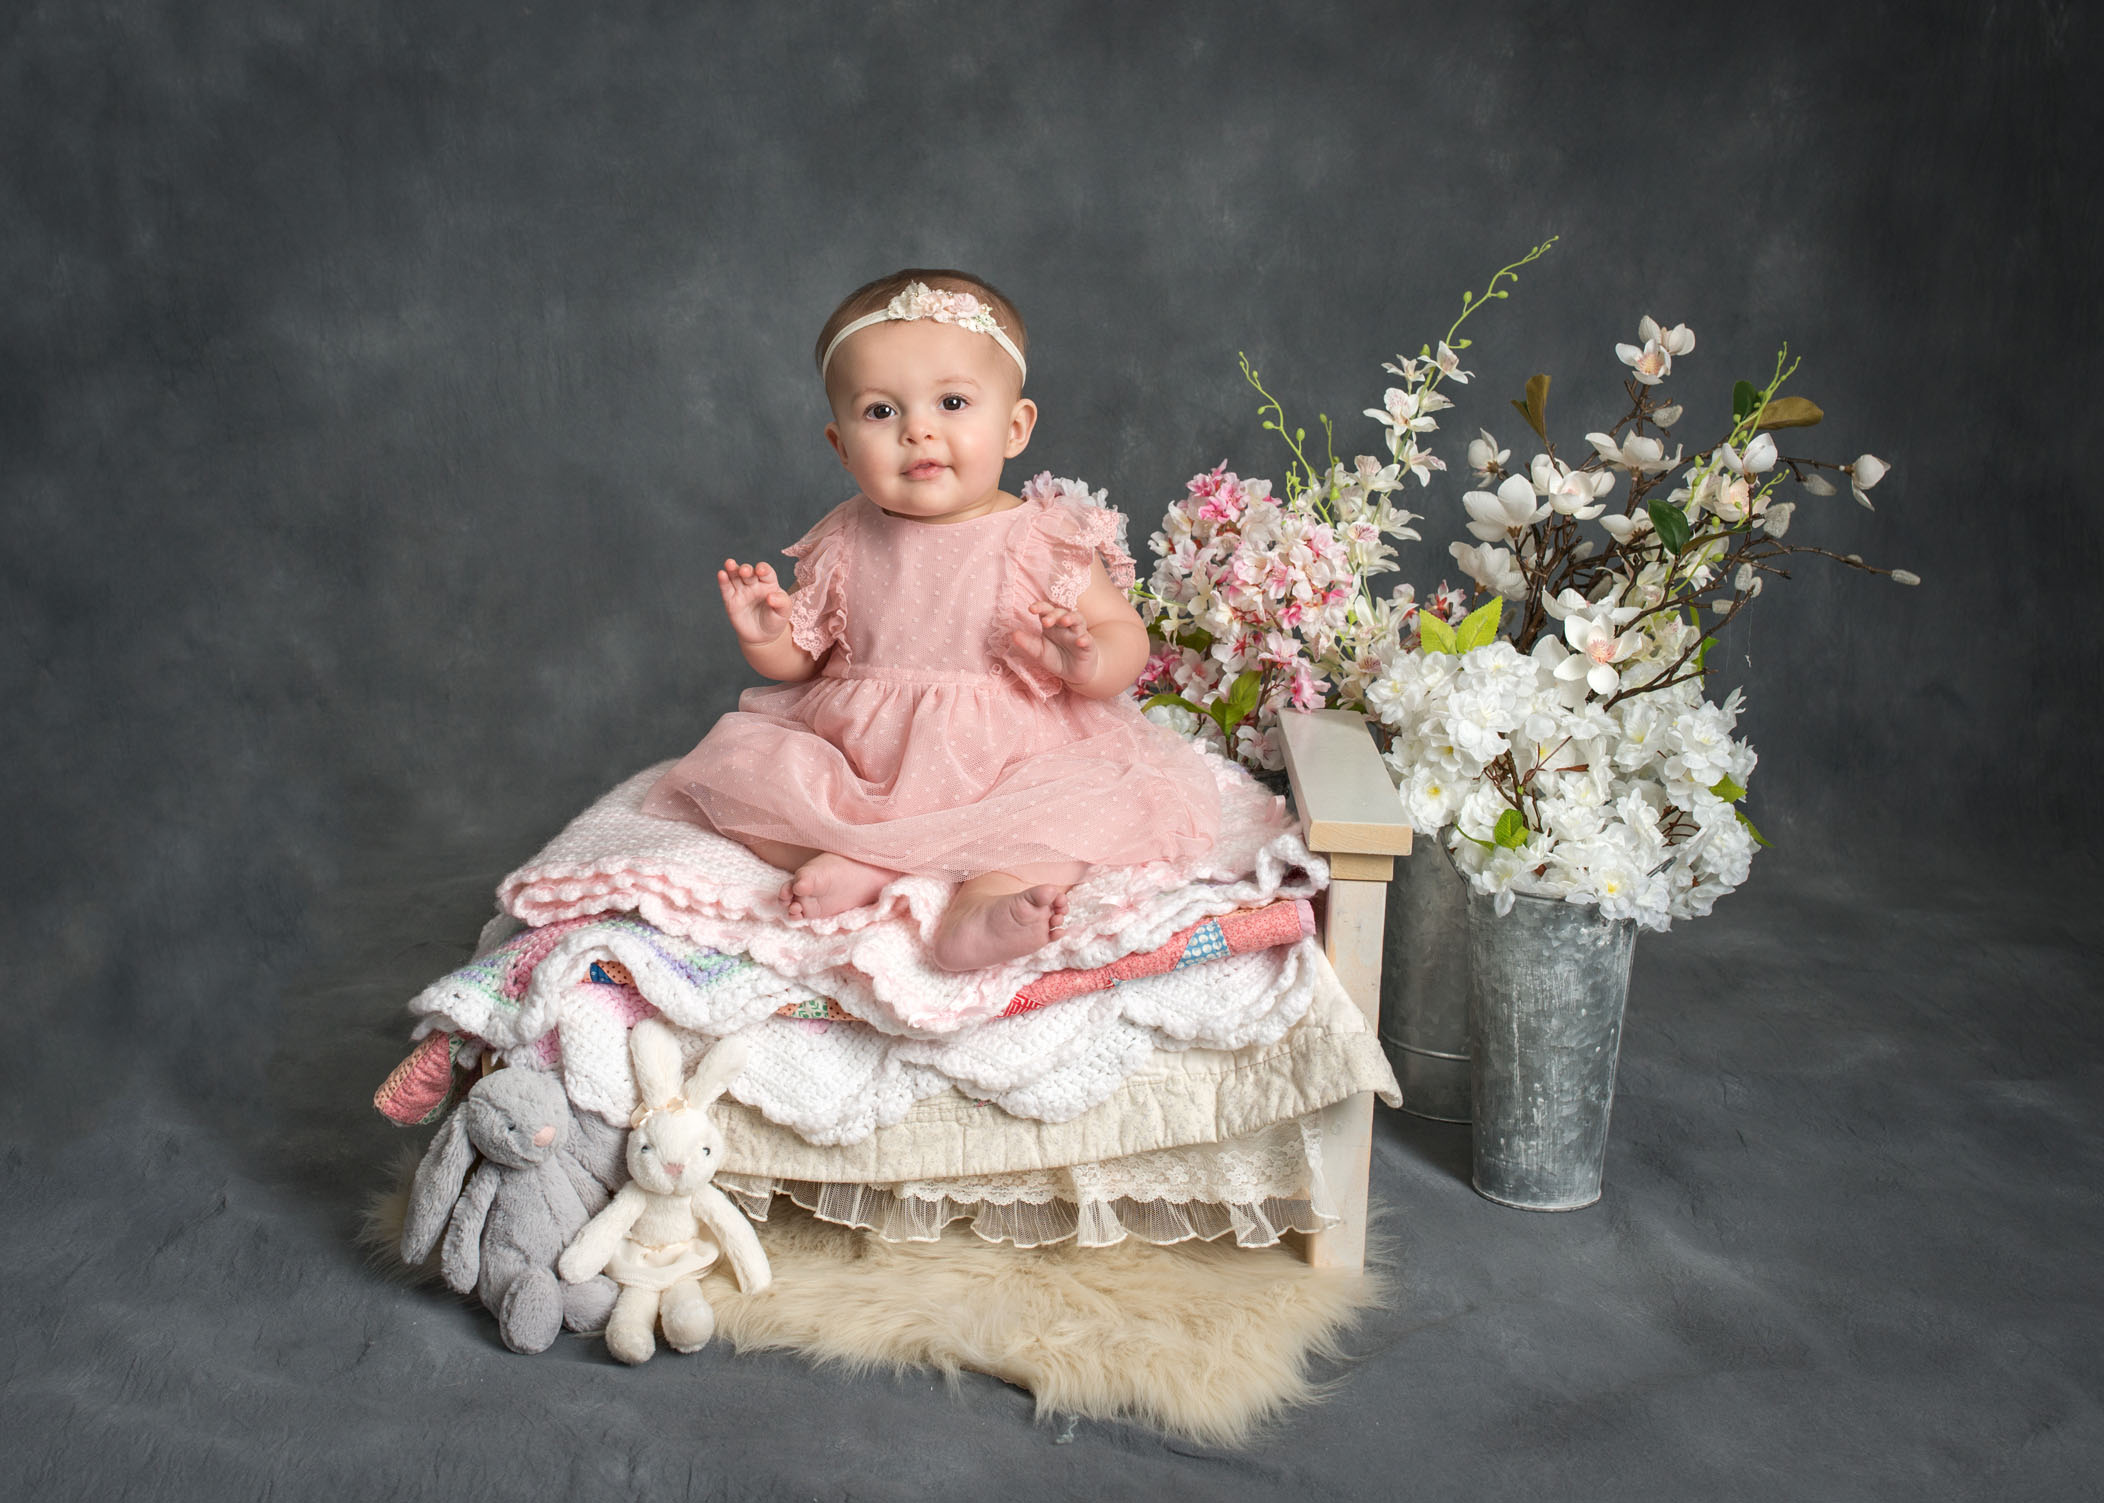 641da2153 Madelyn ~ Studio session for 6 month old baby girl